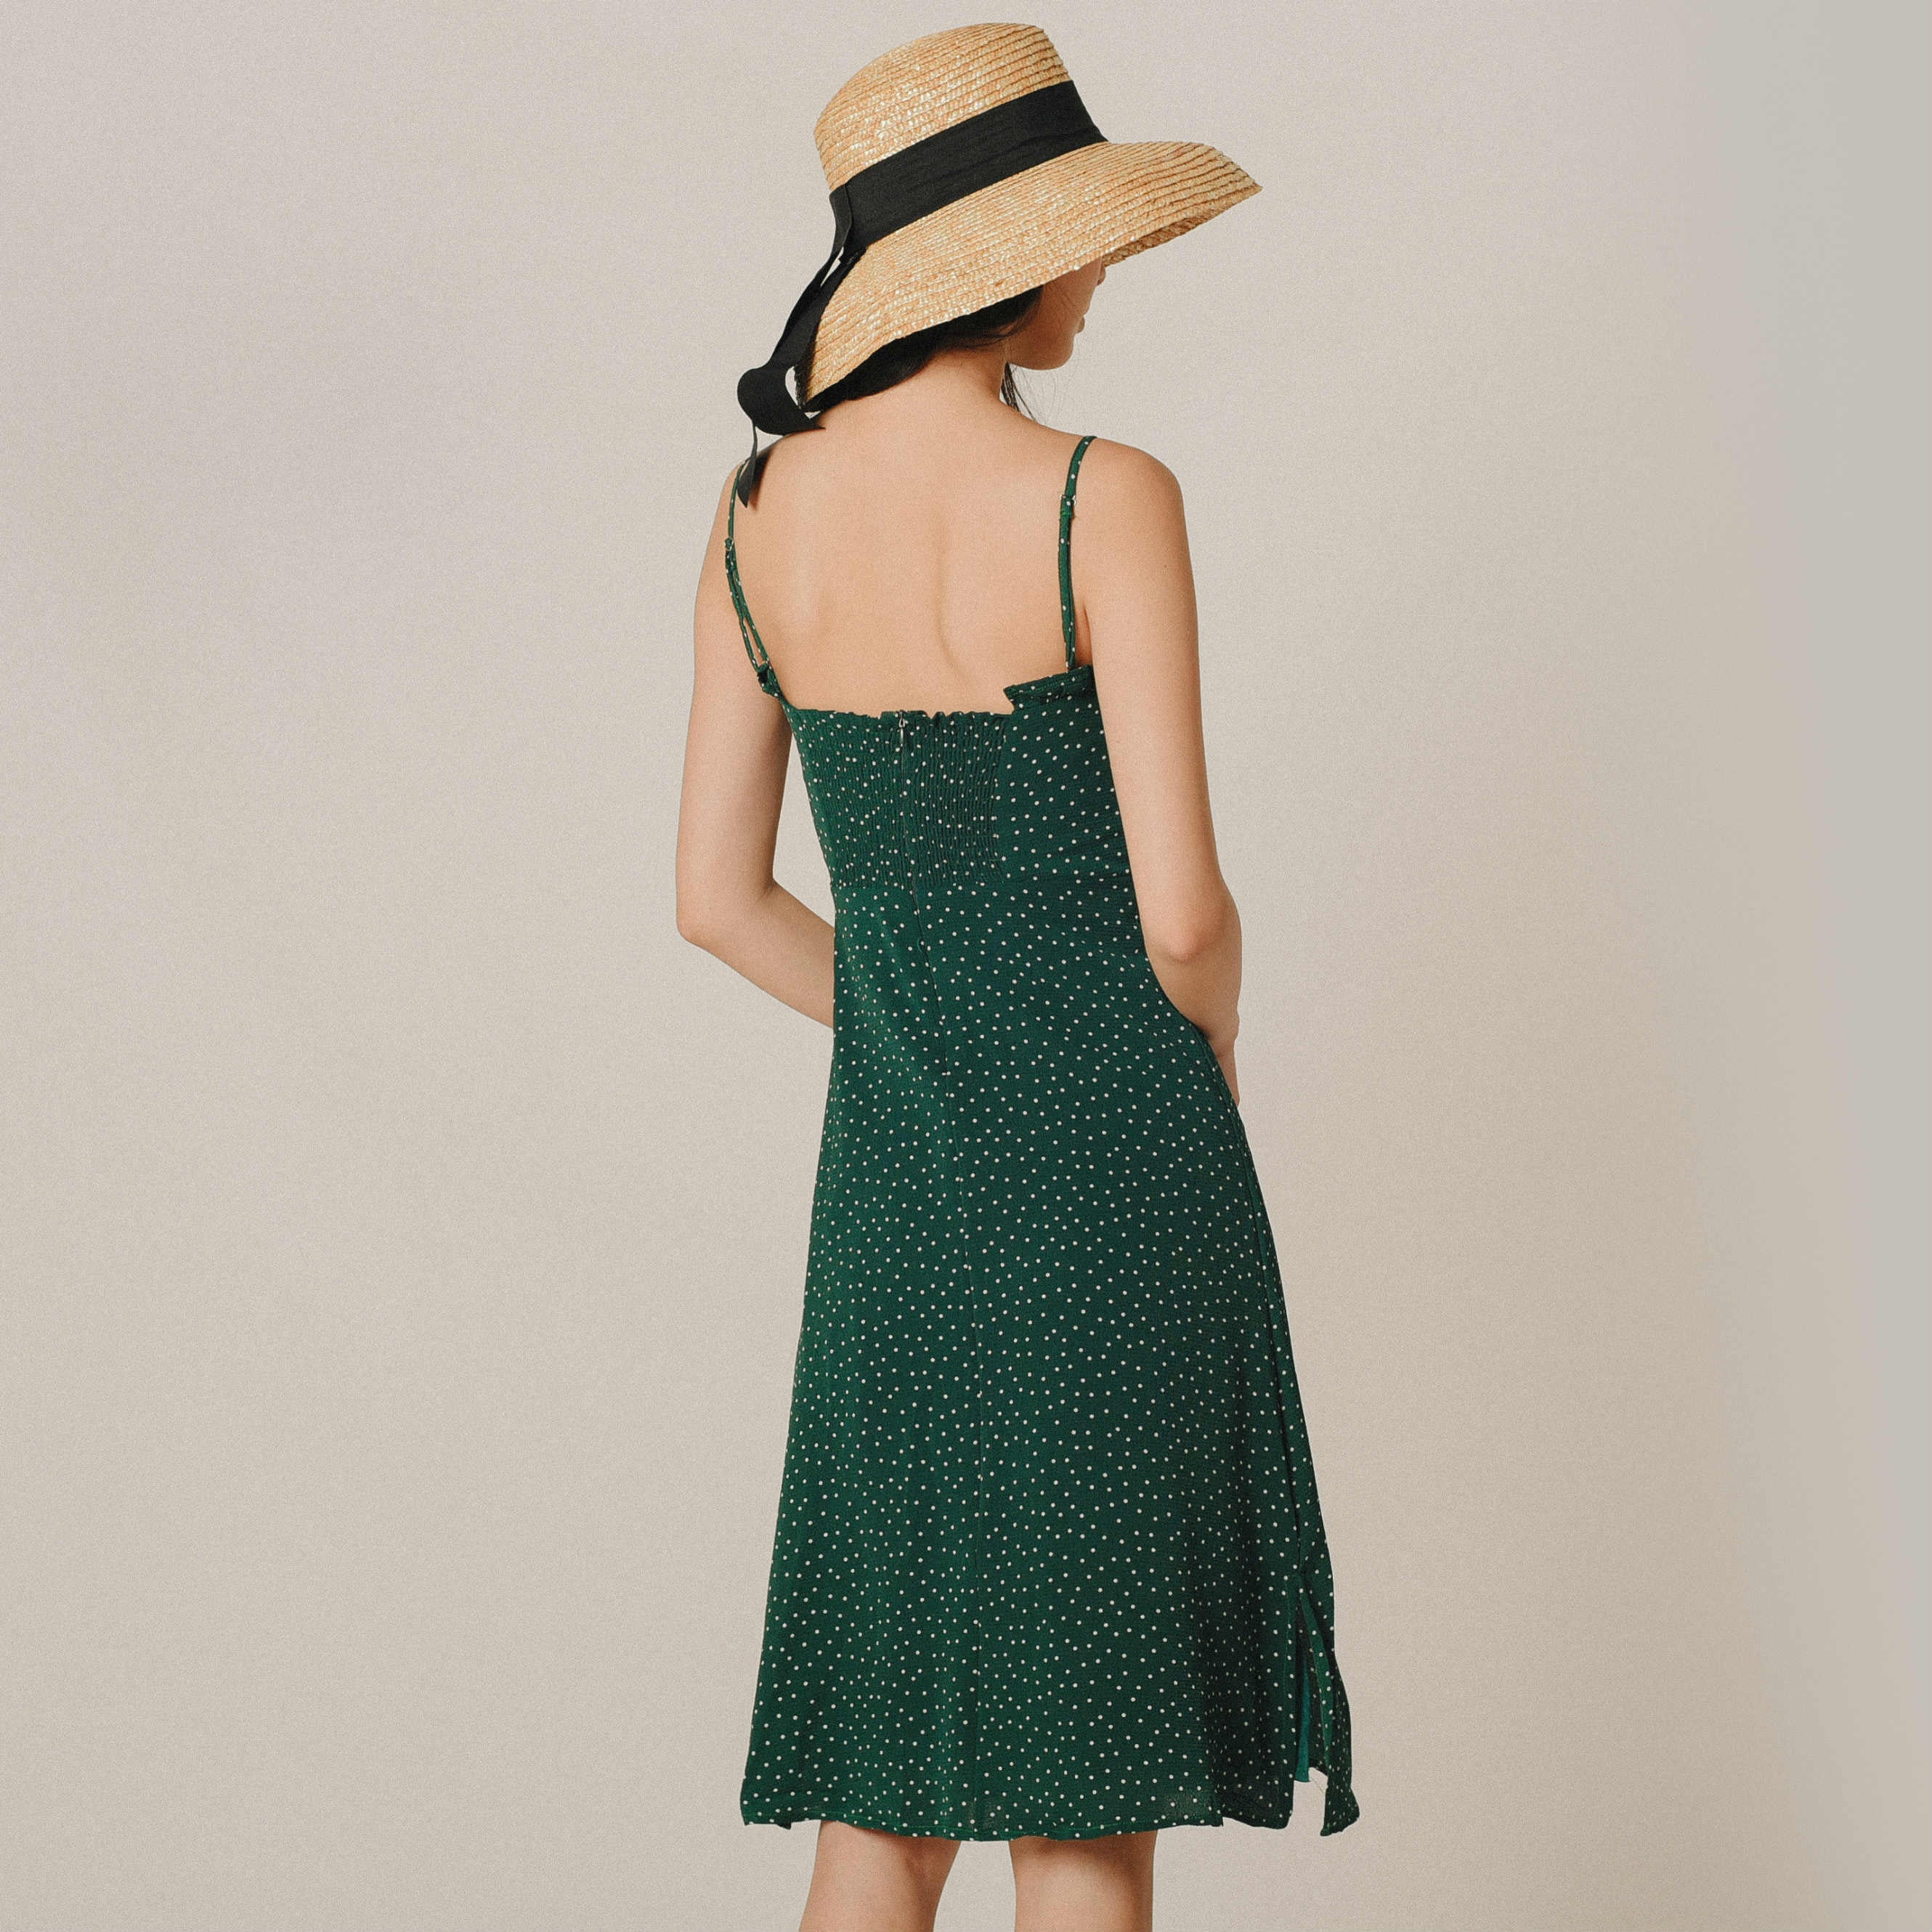 [BACKORDER] Viola Green Polka Dress